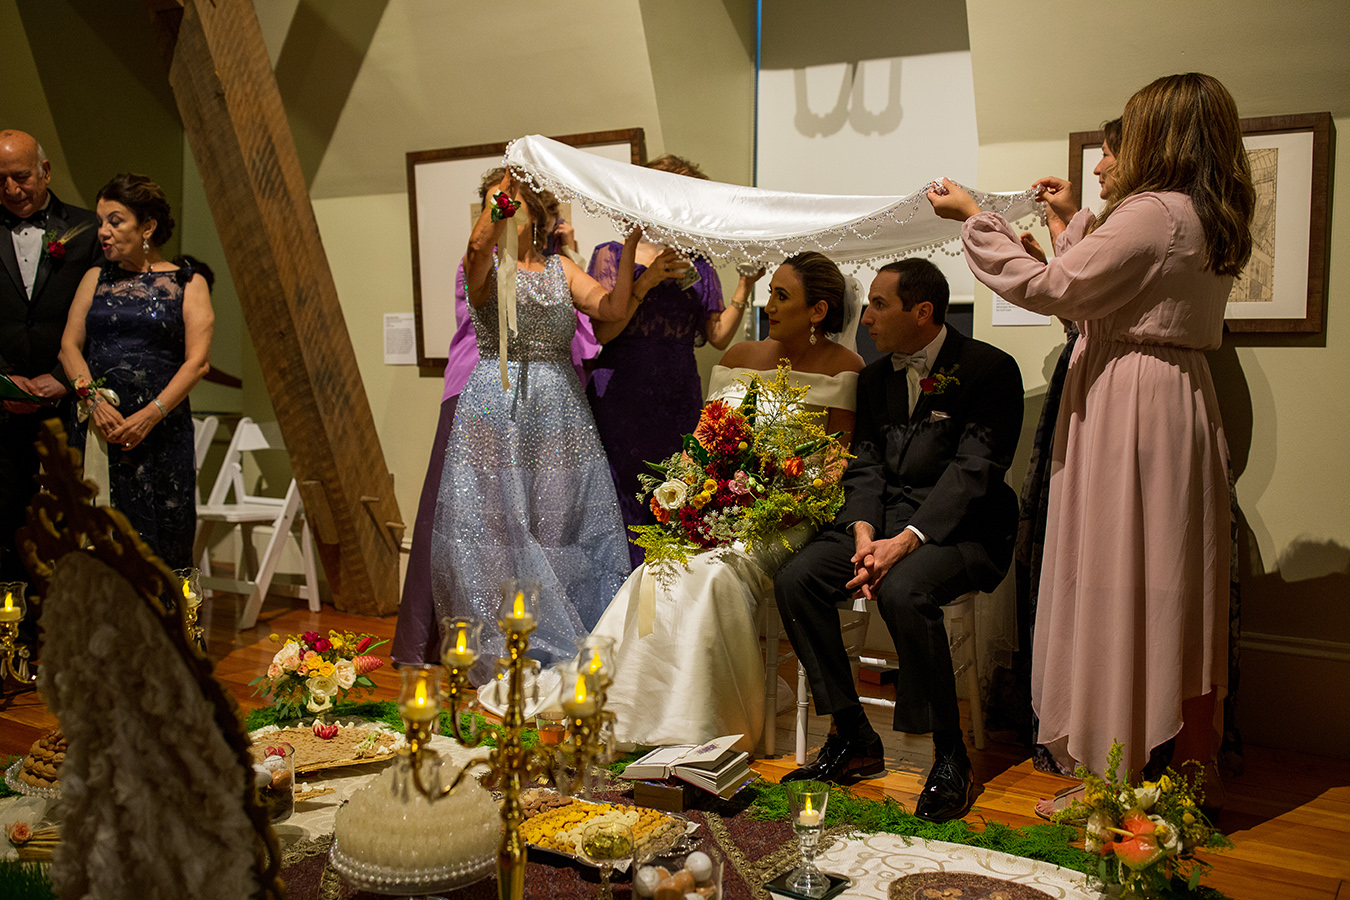 During the ceremony, happily married women grinded sugar over Susan and Richard's heads and the couple fed each other honey off of their pinkies in front of all the guests.